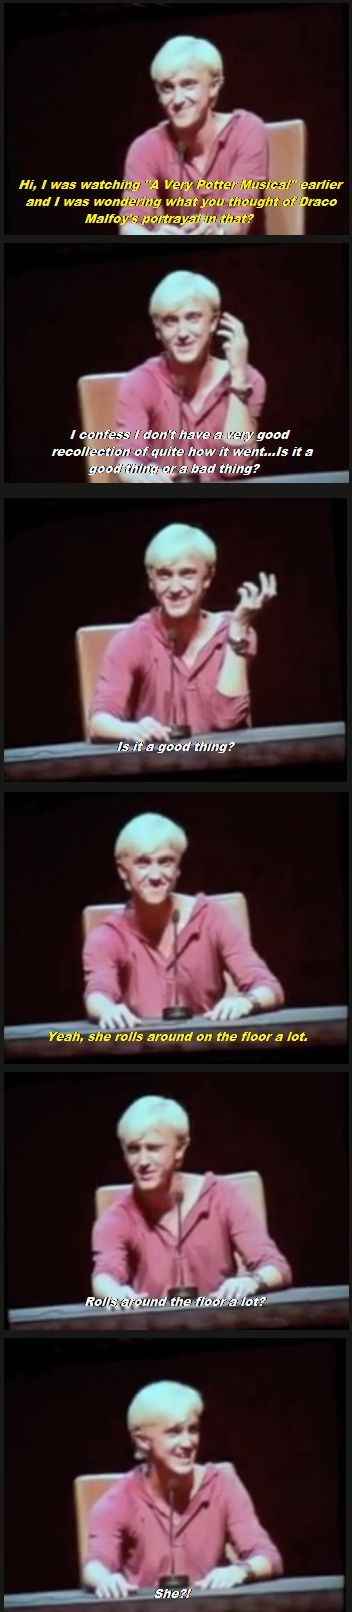 Tom Felton's reaction to A Very Potter Musical...love this!: